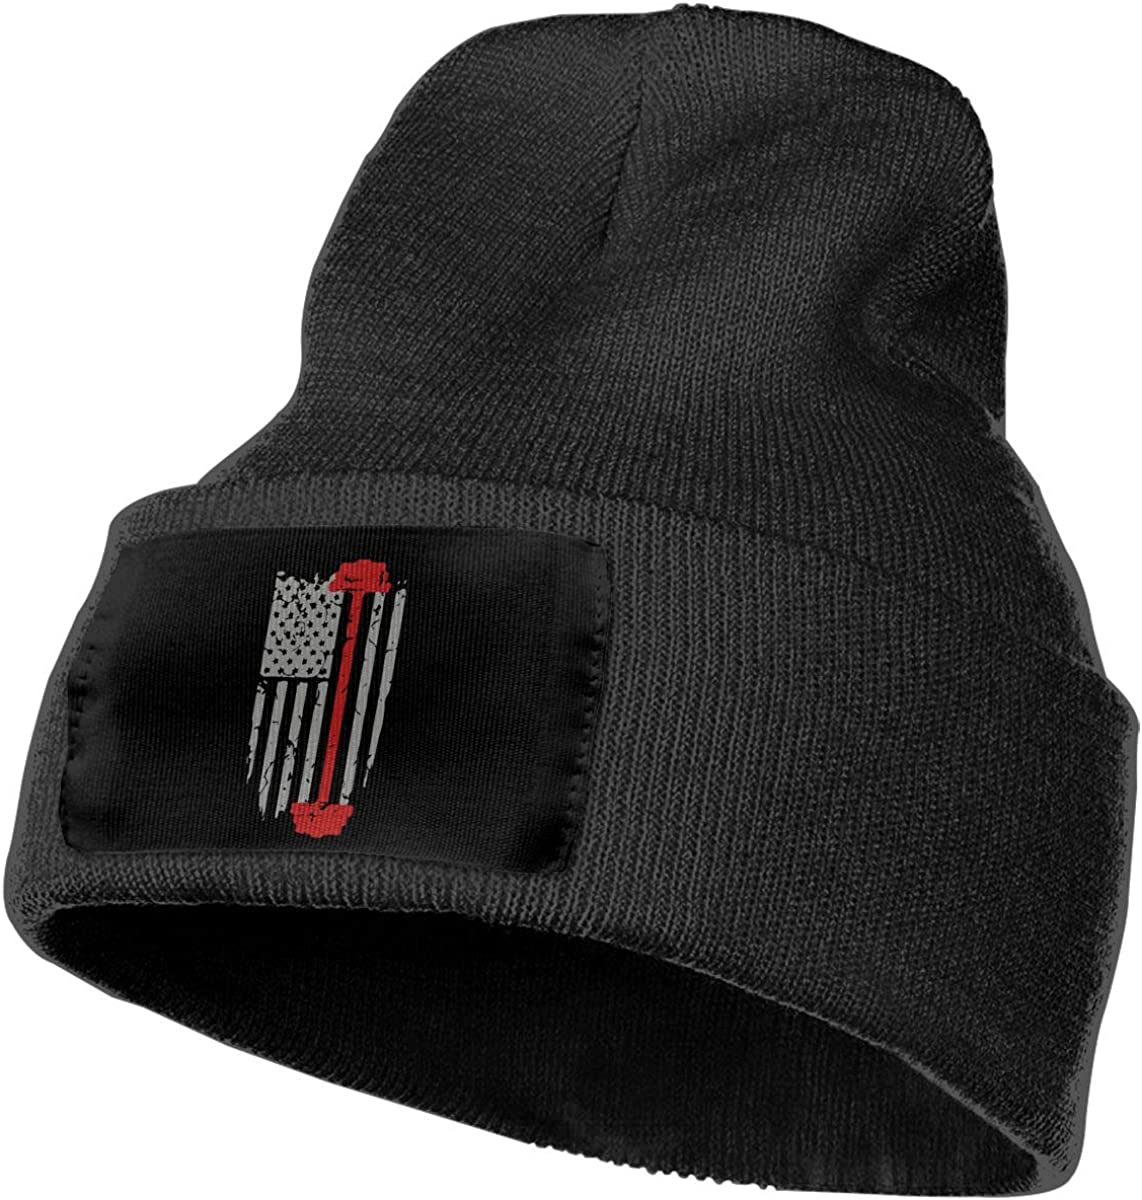 COLLJL-8 Unisex Weight Lifting Flag Outdoor Stretch Knit Beanies Hat Soft Winter Knit Caps